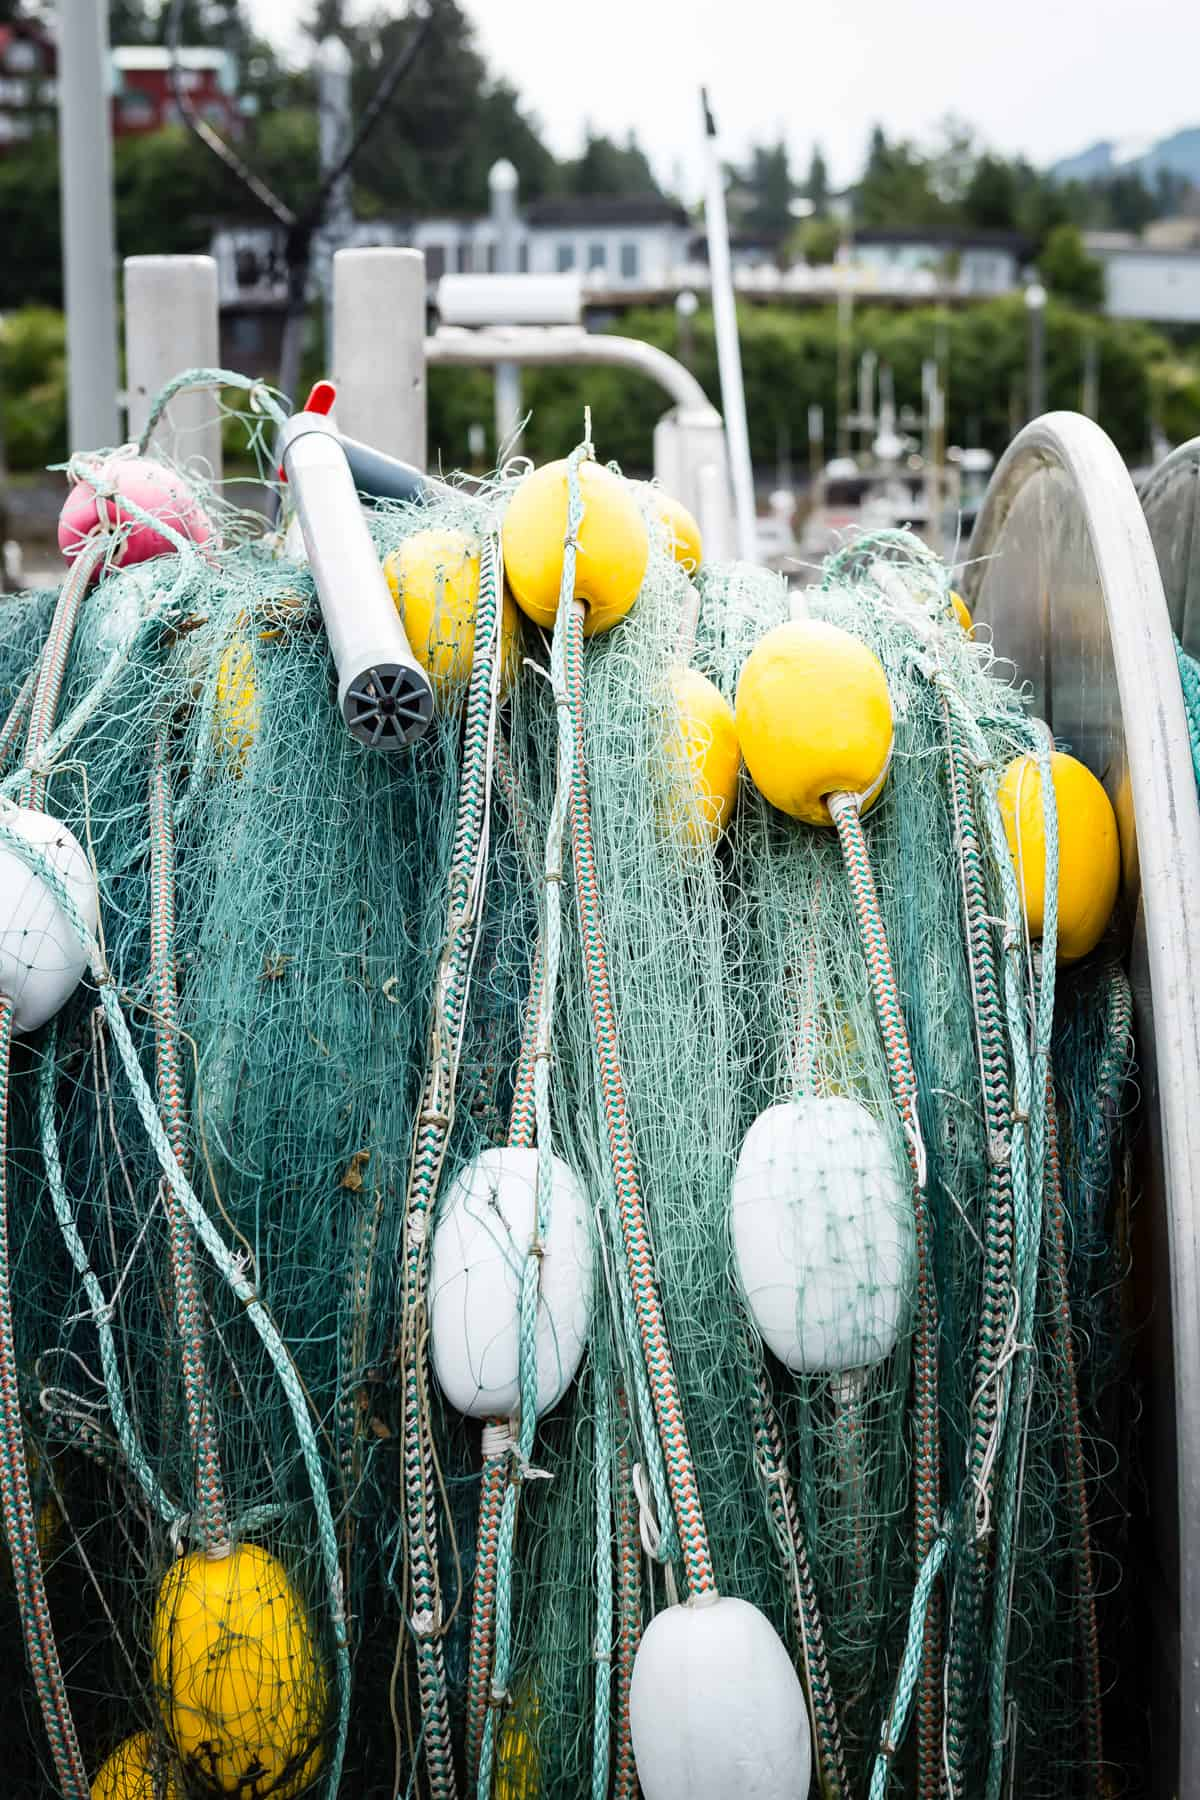 Fishing nets for salmon